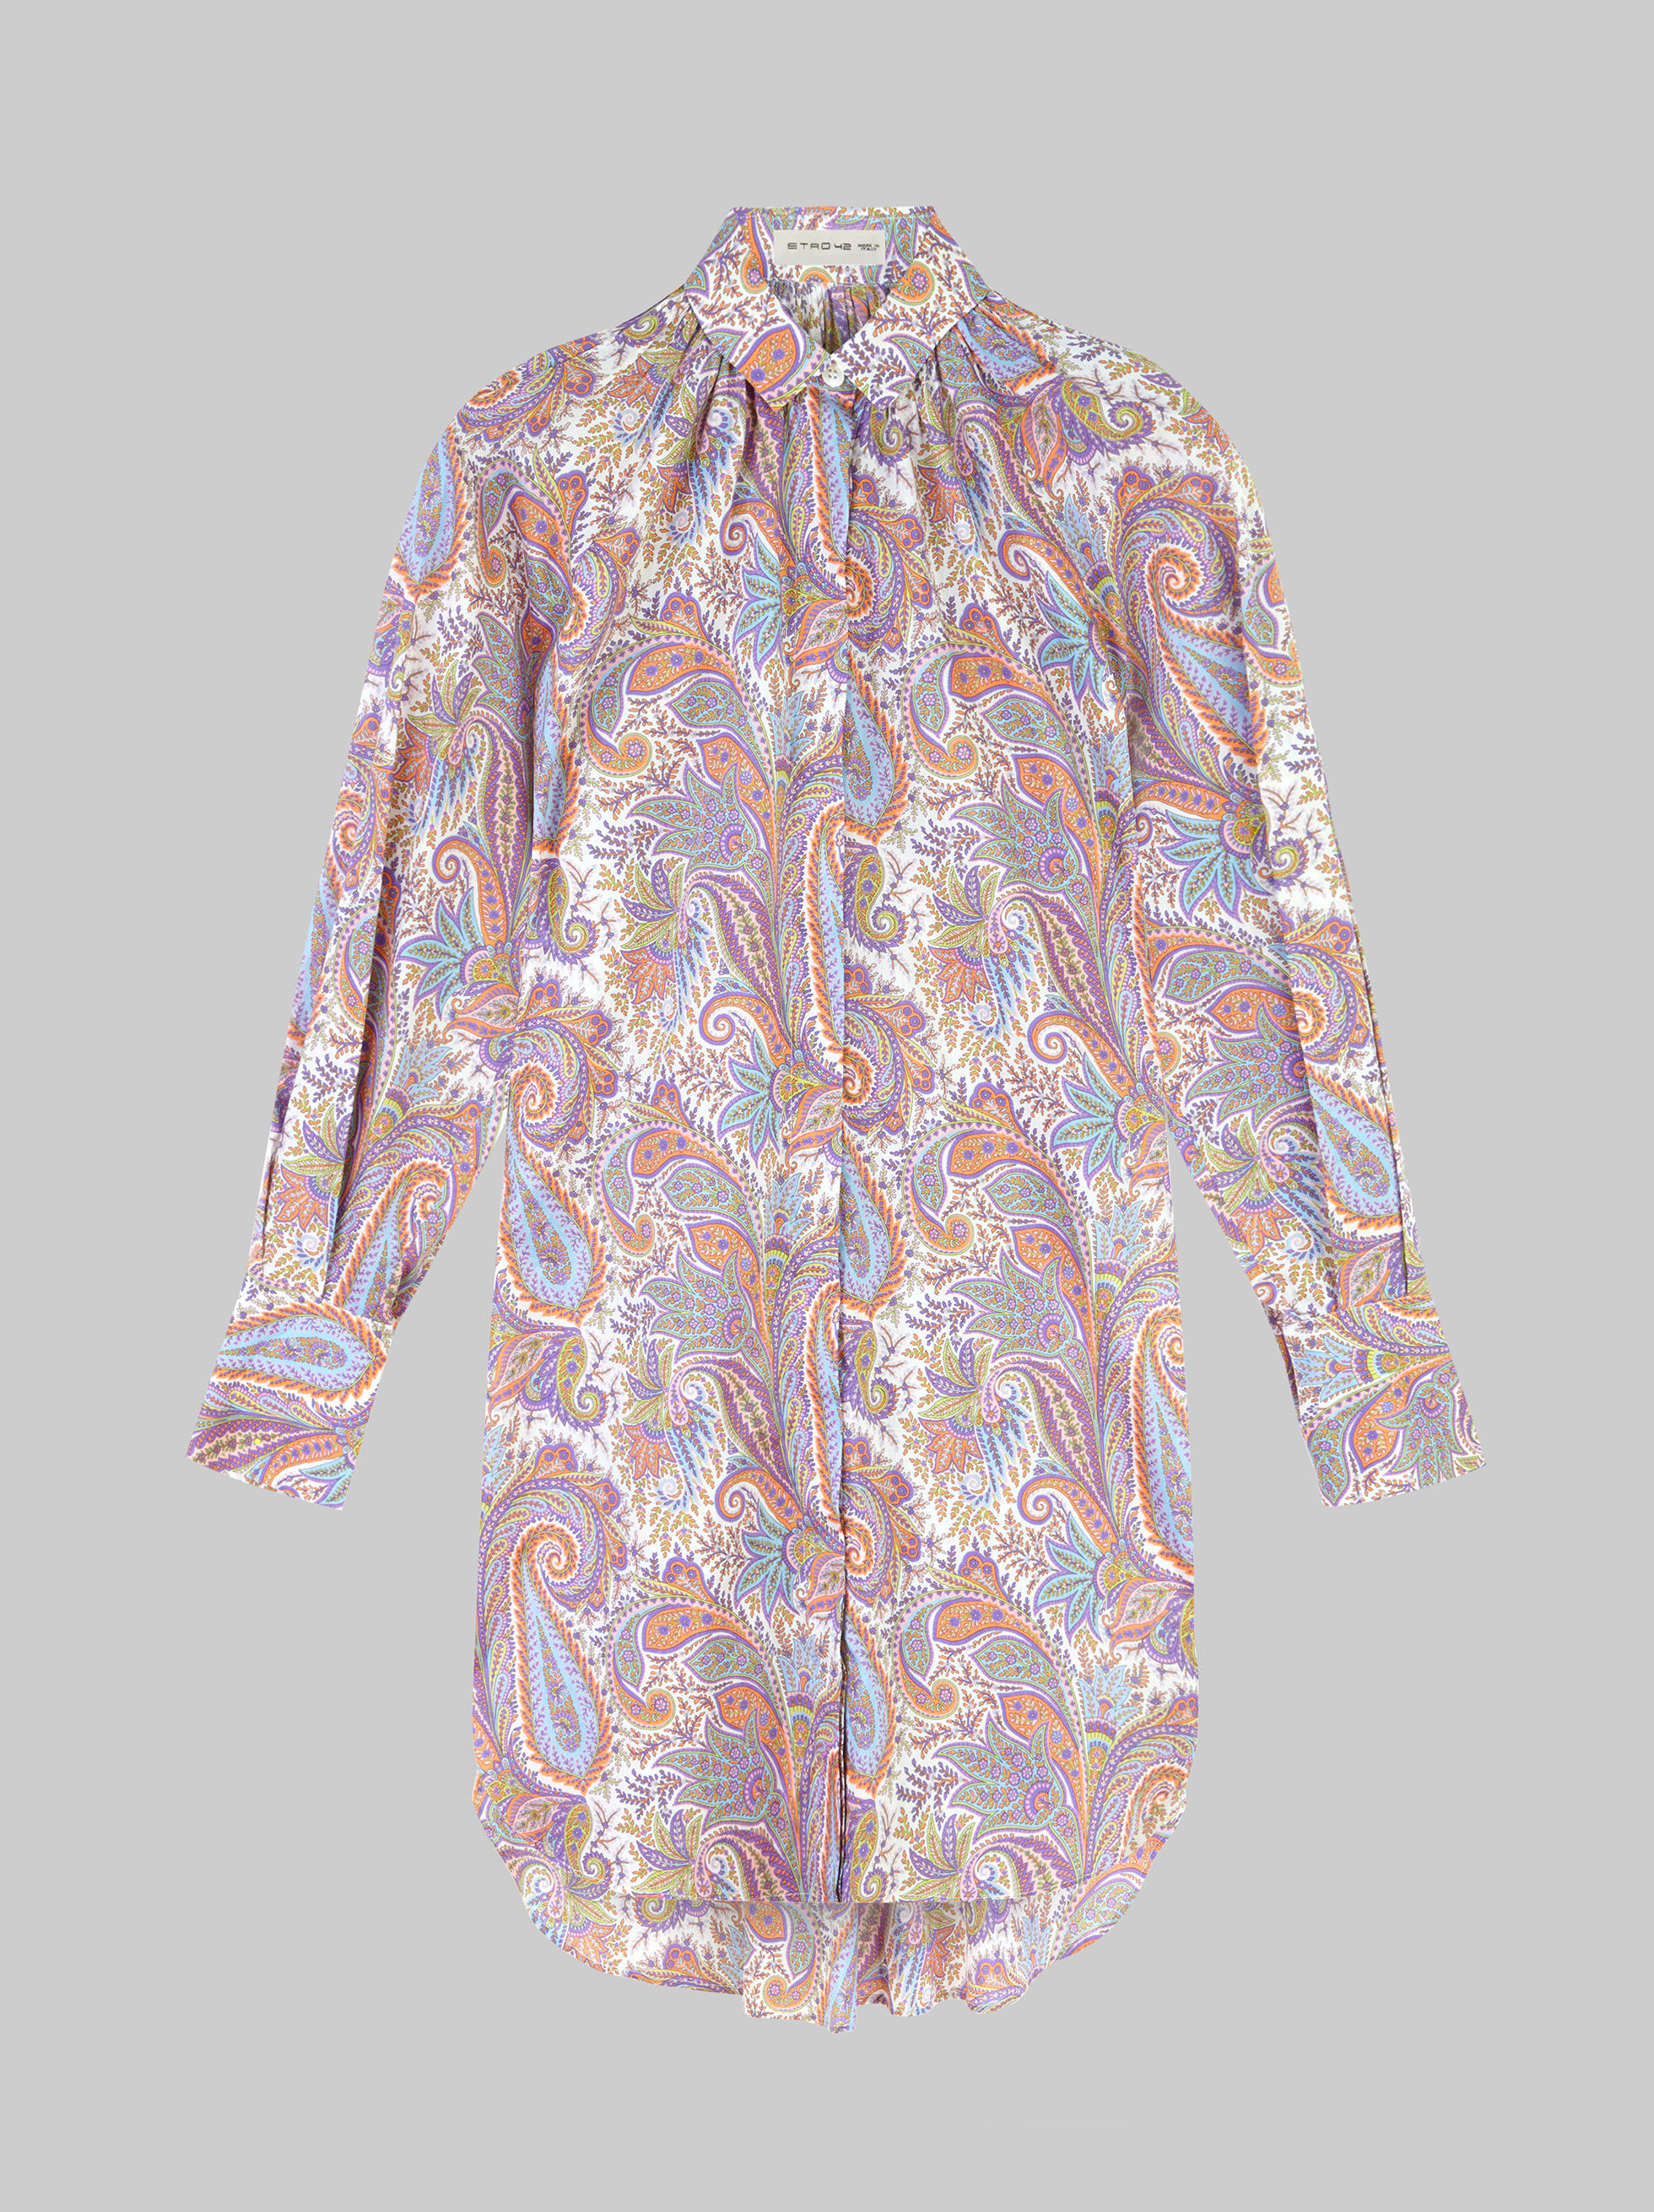 SHIRT WITH PAISLEY PLANT PATTERNS